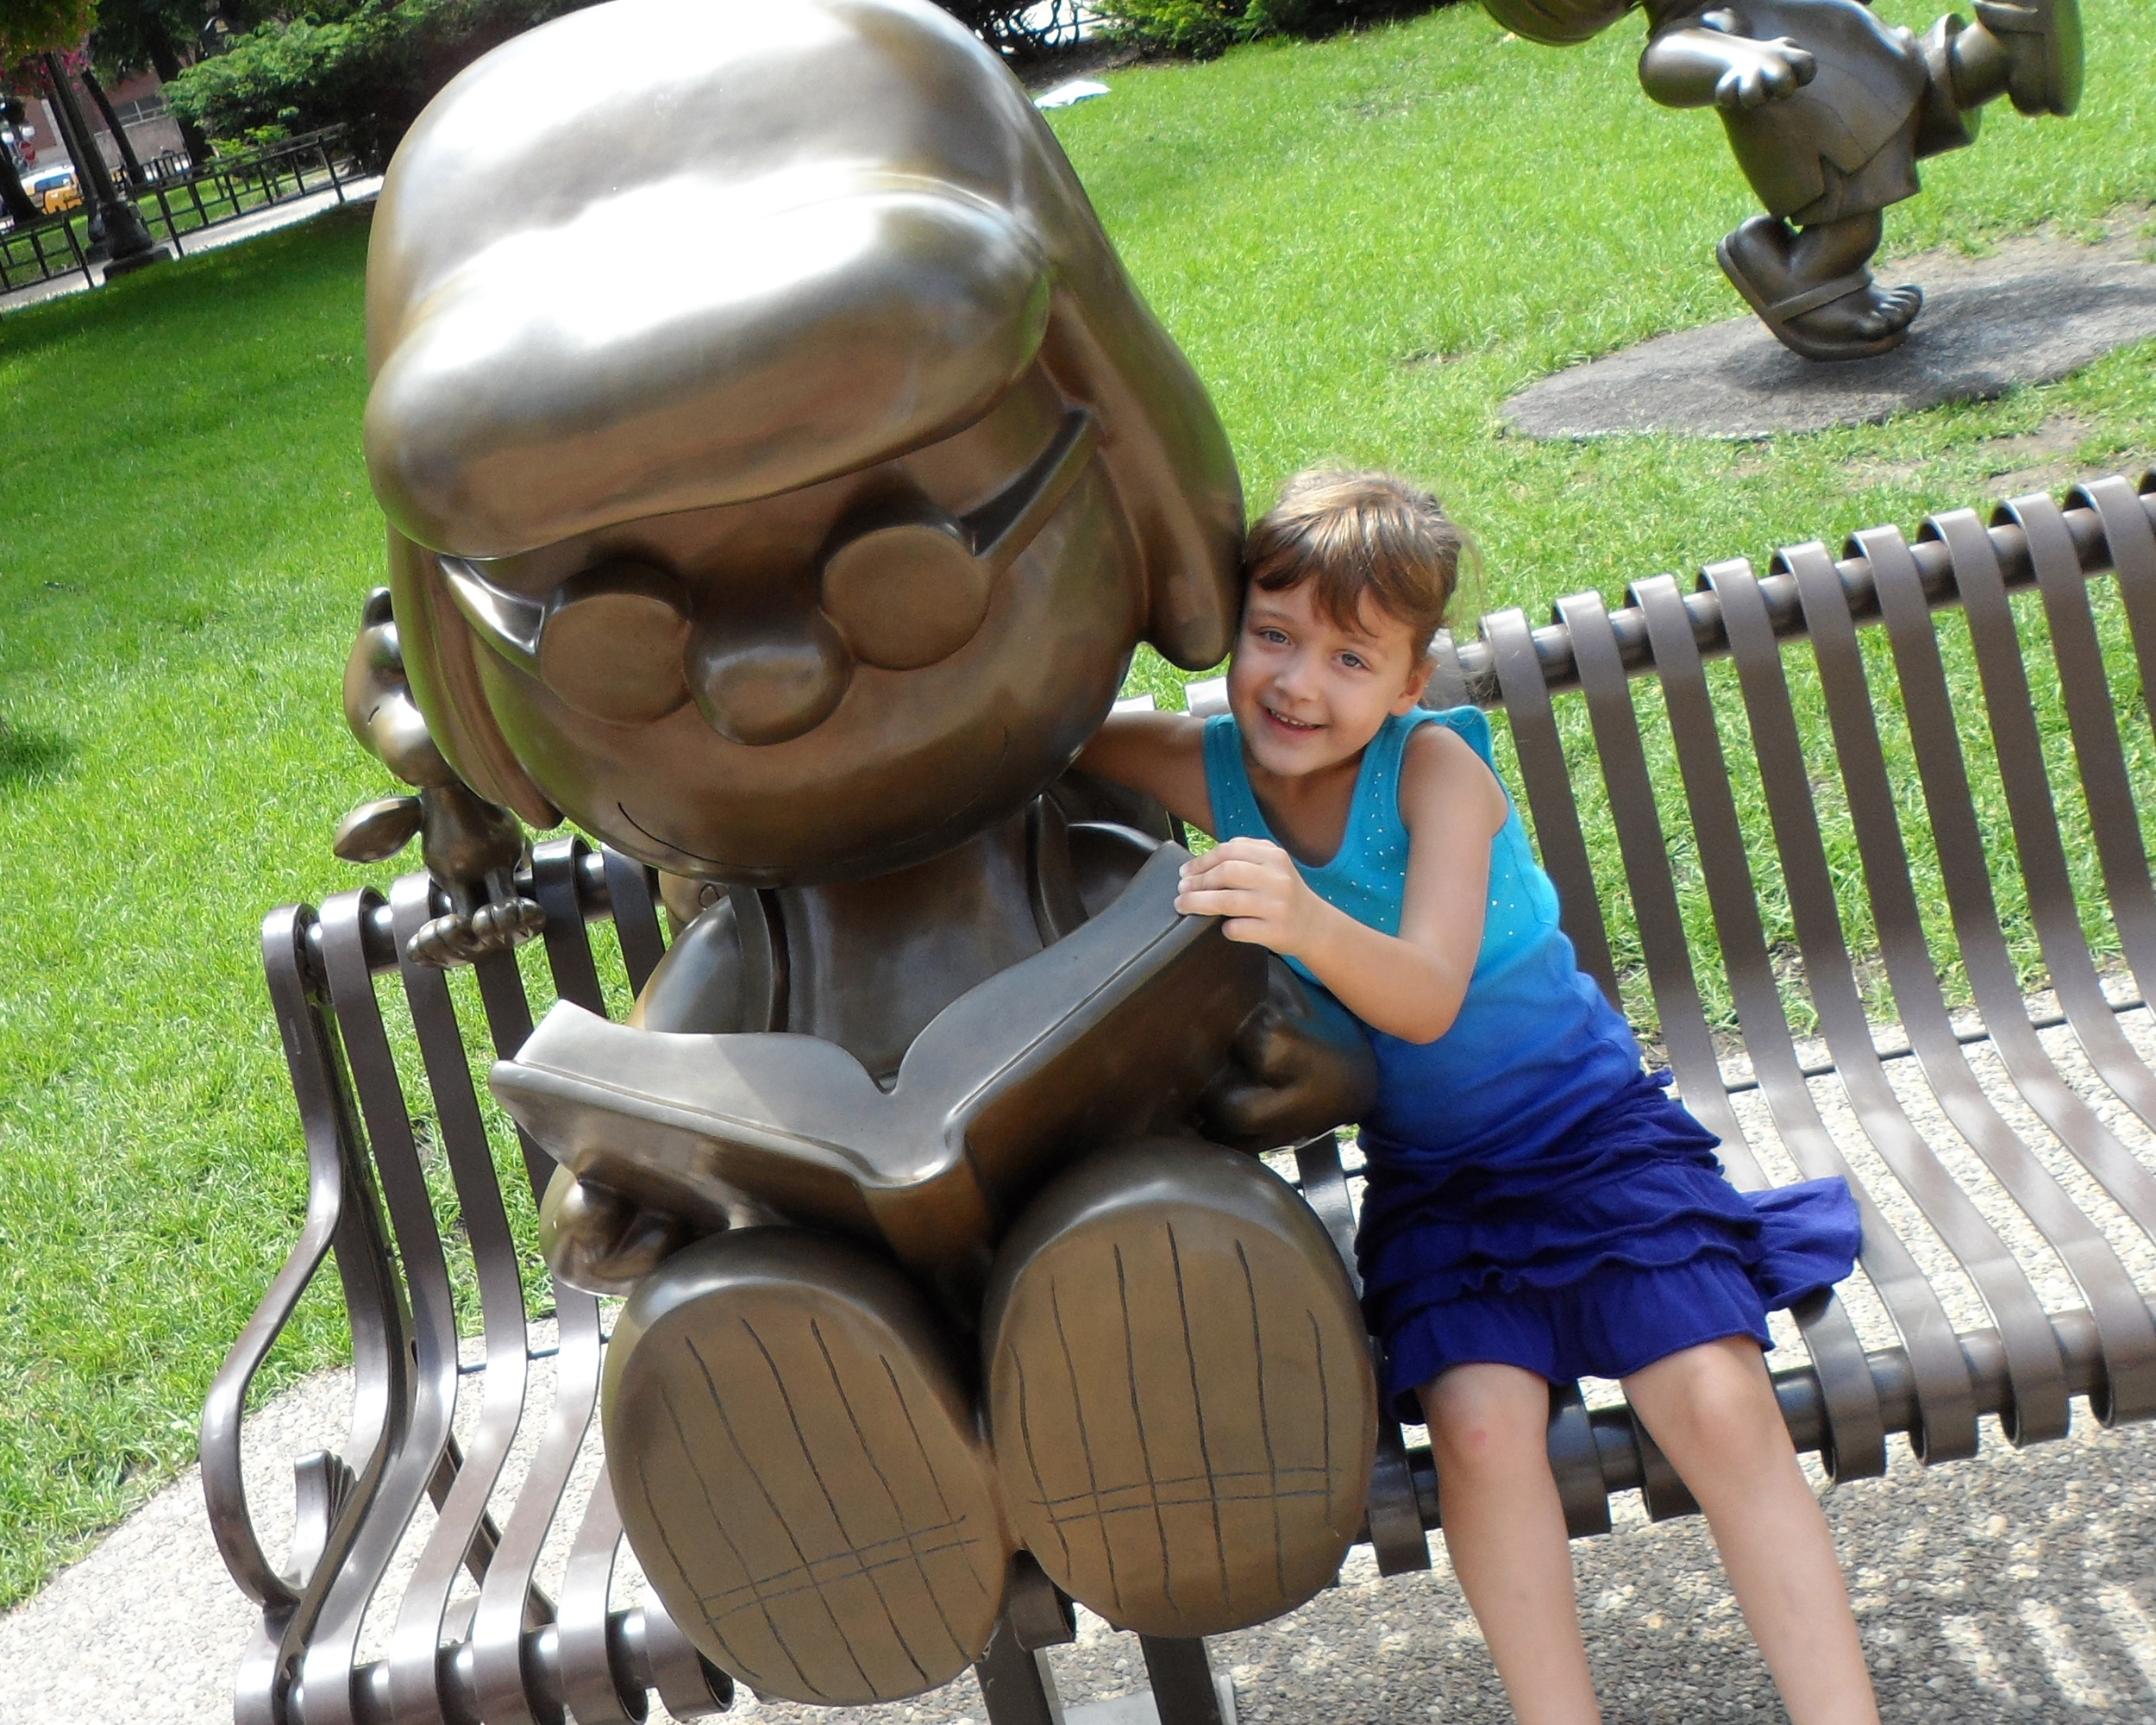 Snoopy Statues, Mears Park, St. Paul, MN